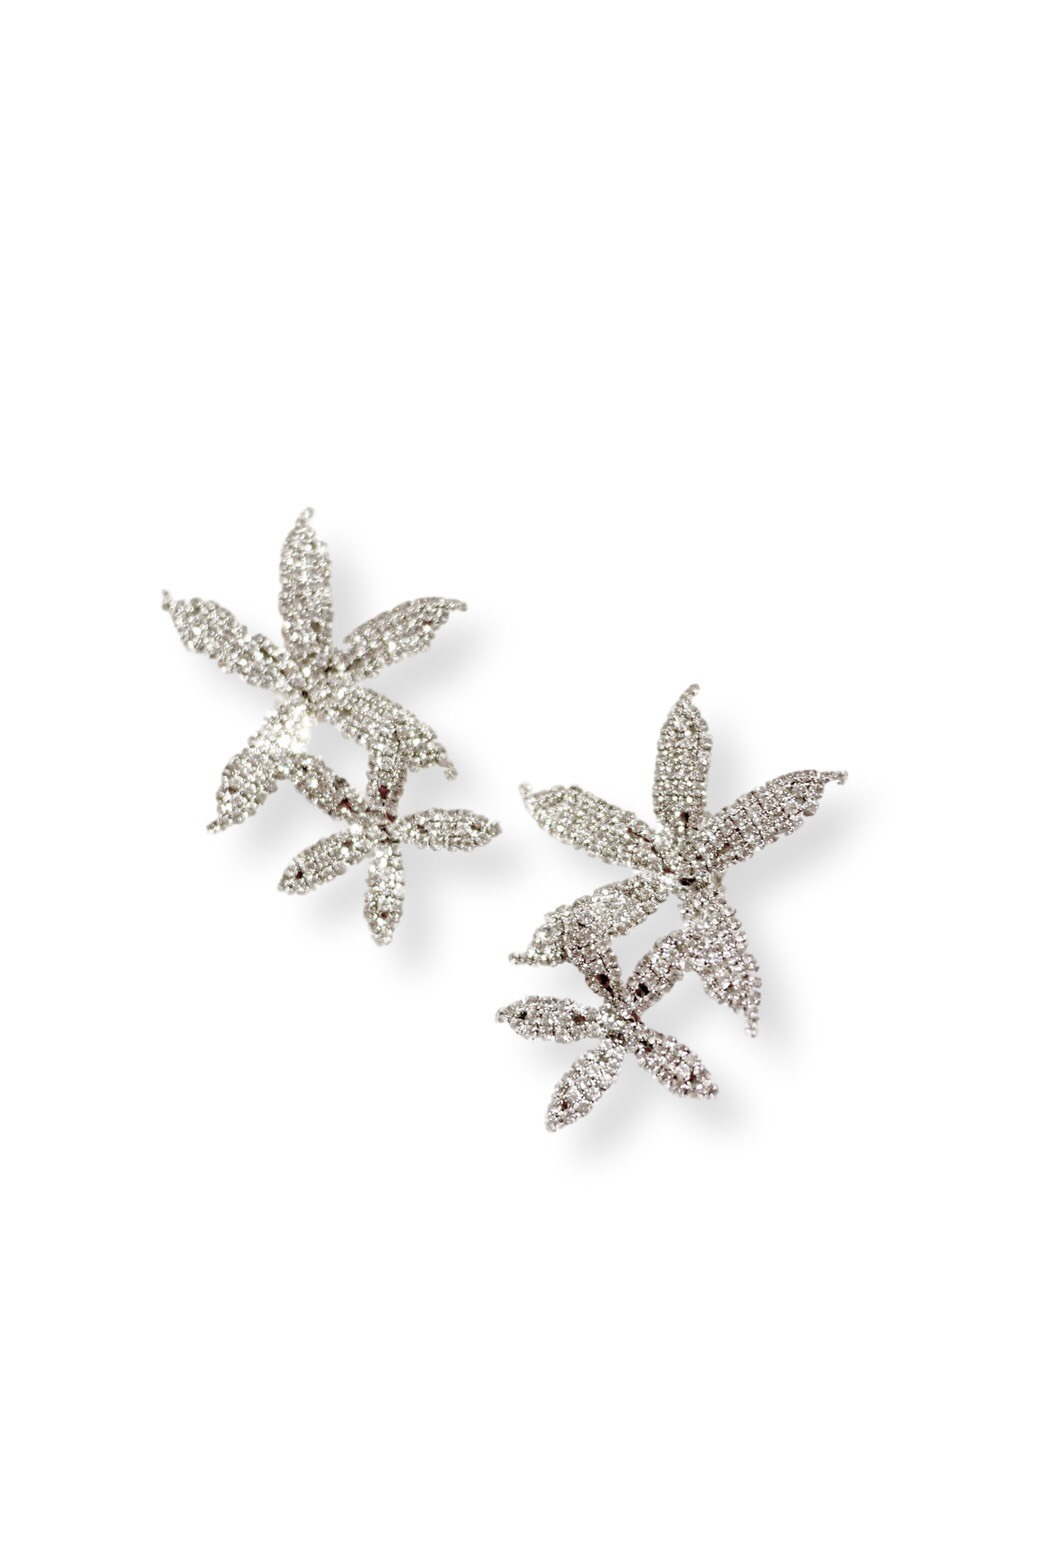 [RENTAL][Crystal Orchid  Cascade Earrings]by JENNIFER BEHR